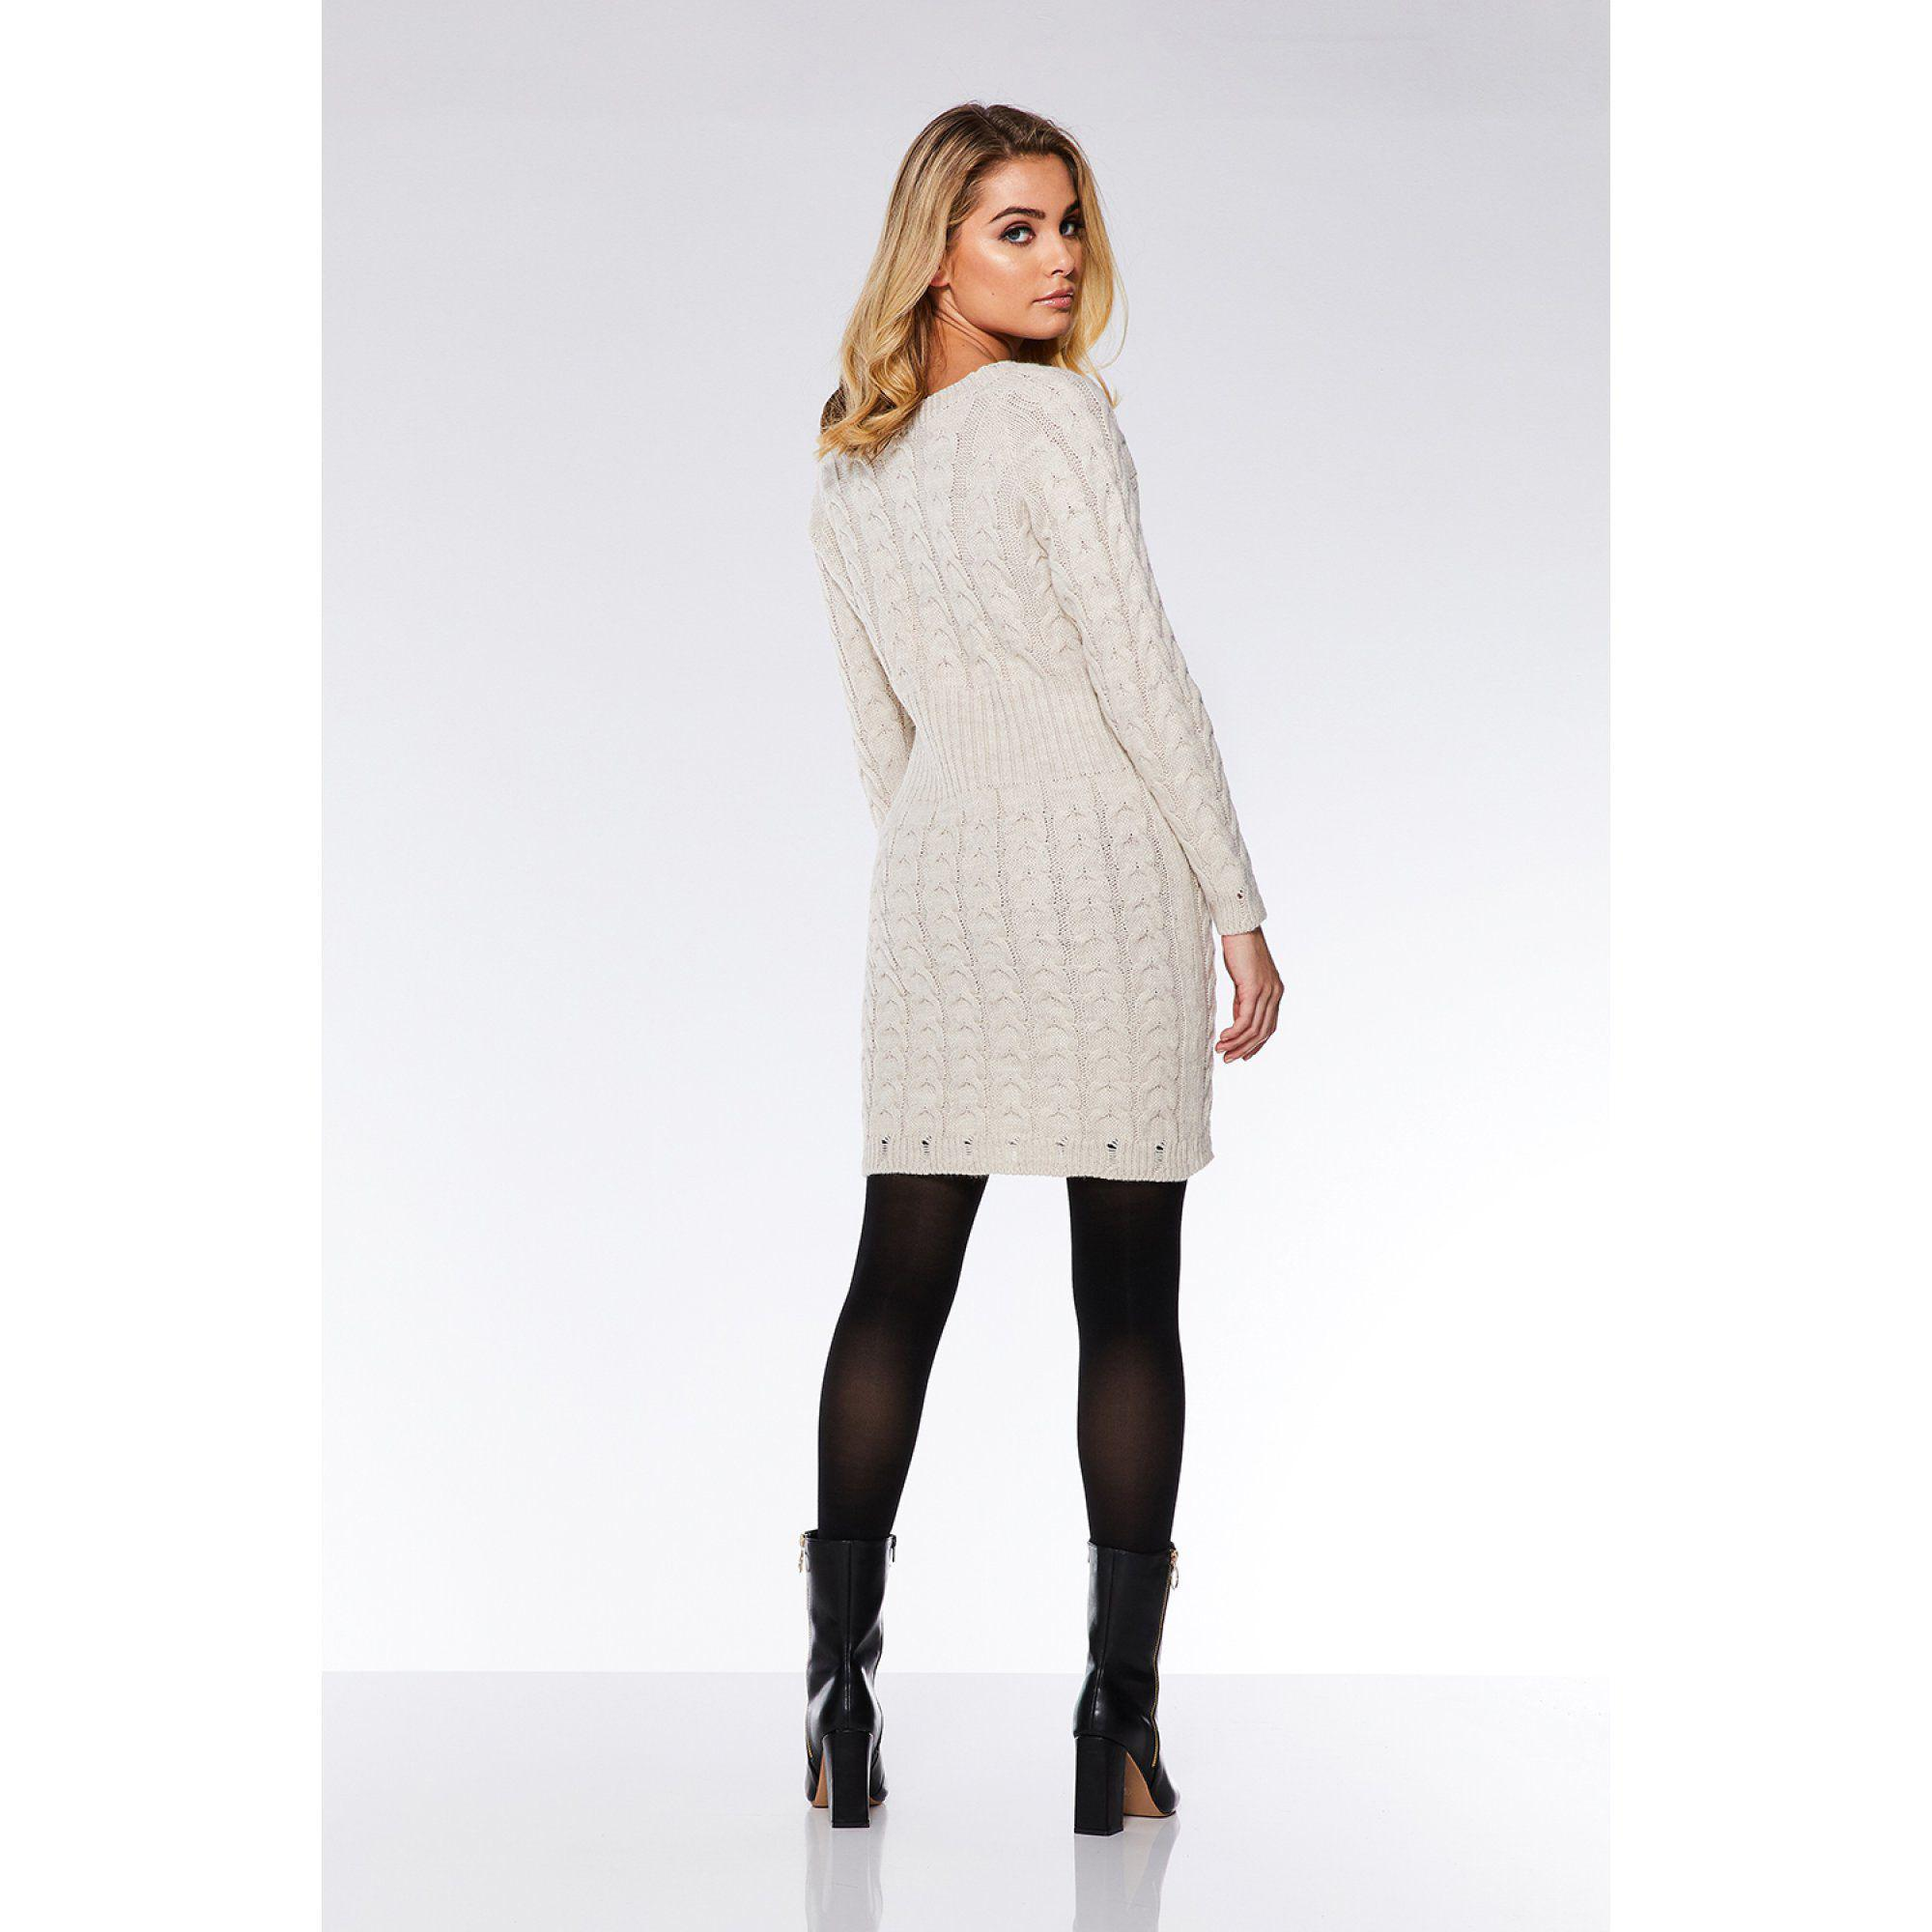 4299854e4e7f Quiz - Natural Oatmeal Knit Cable Design Jumper Dress - Lyst. View  fullscreen